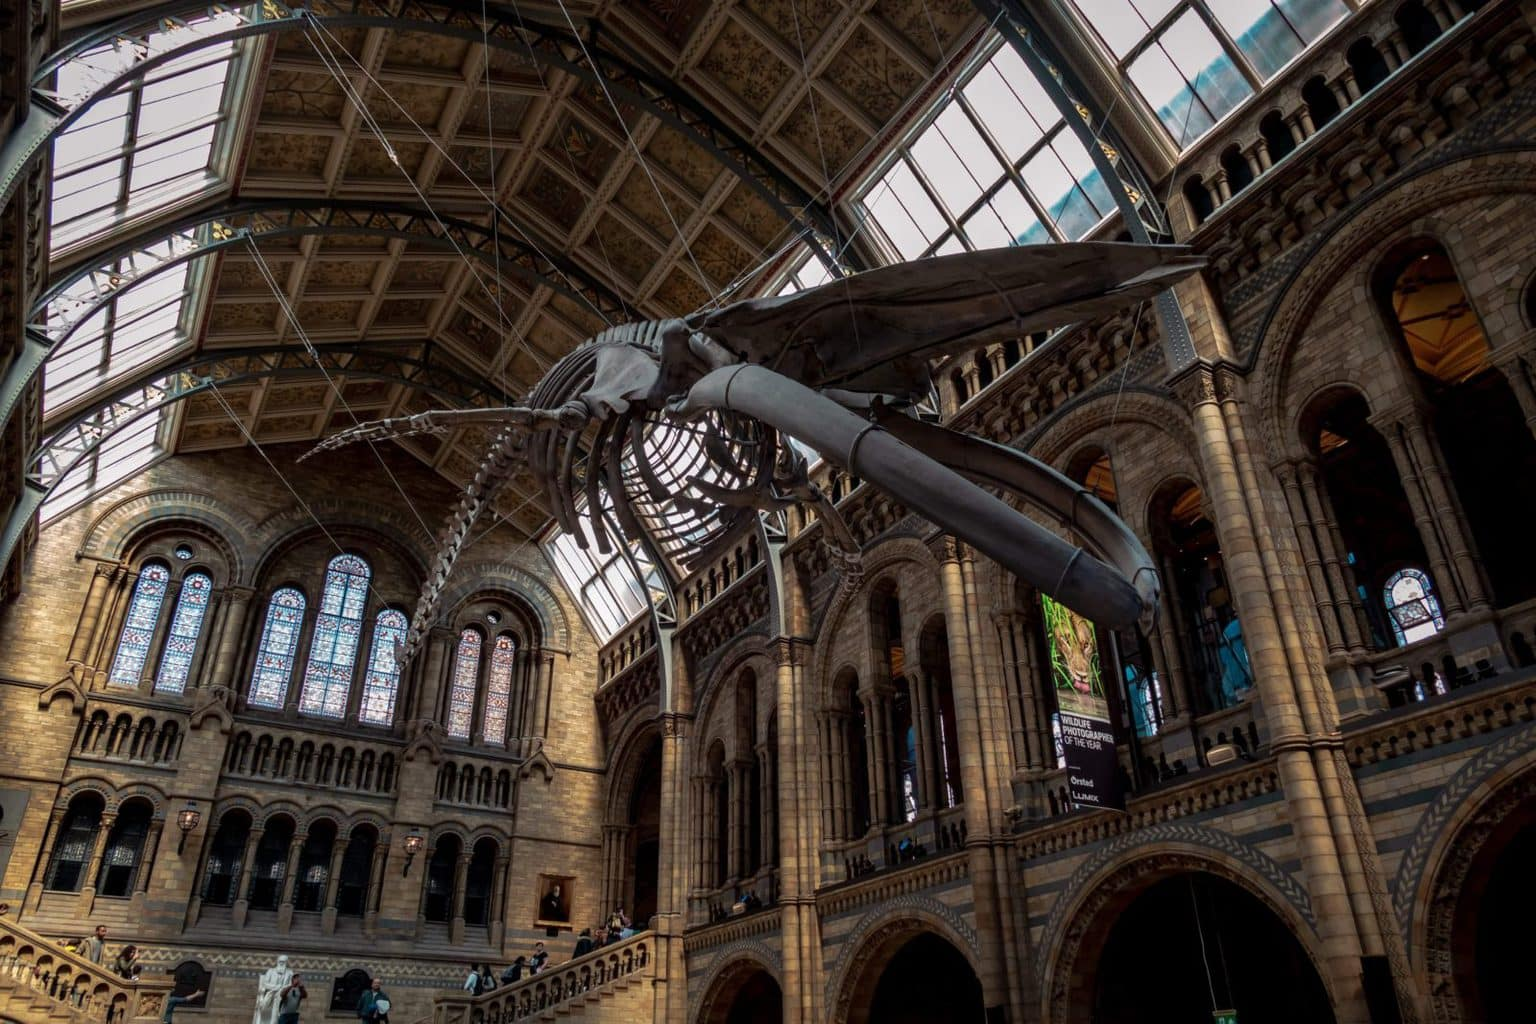 The dinosaur at Natural History Museum in London United Kingdom